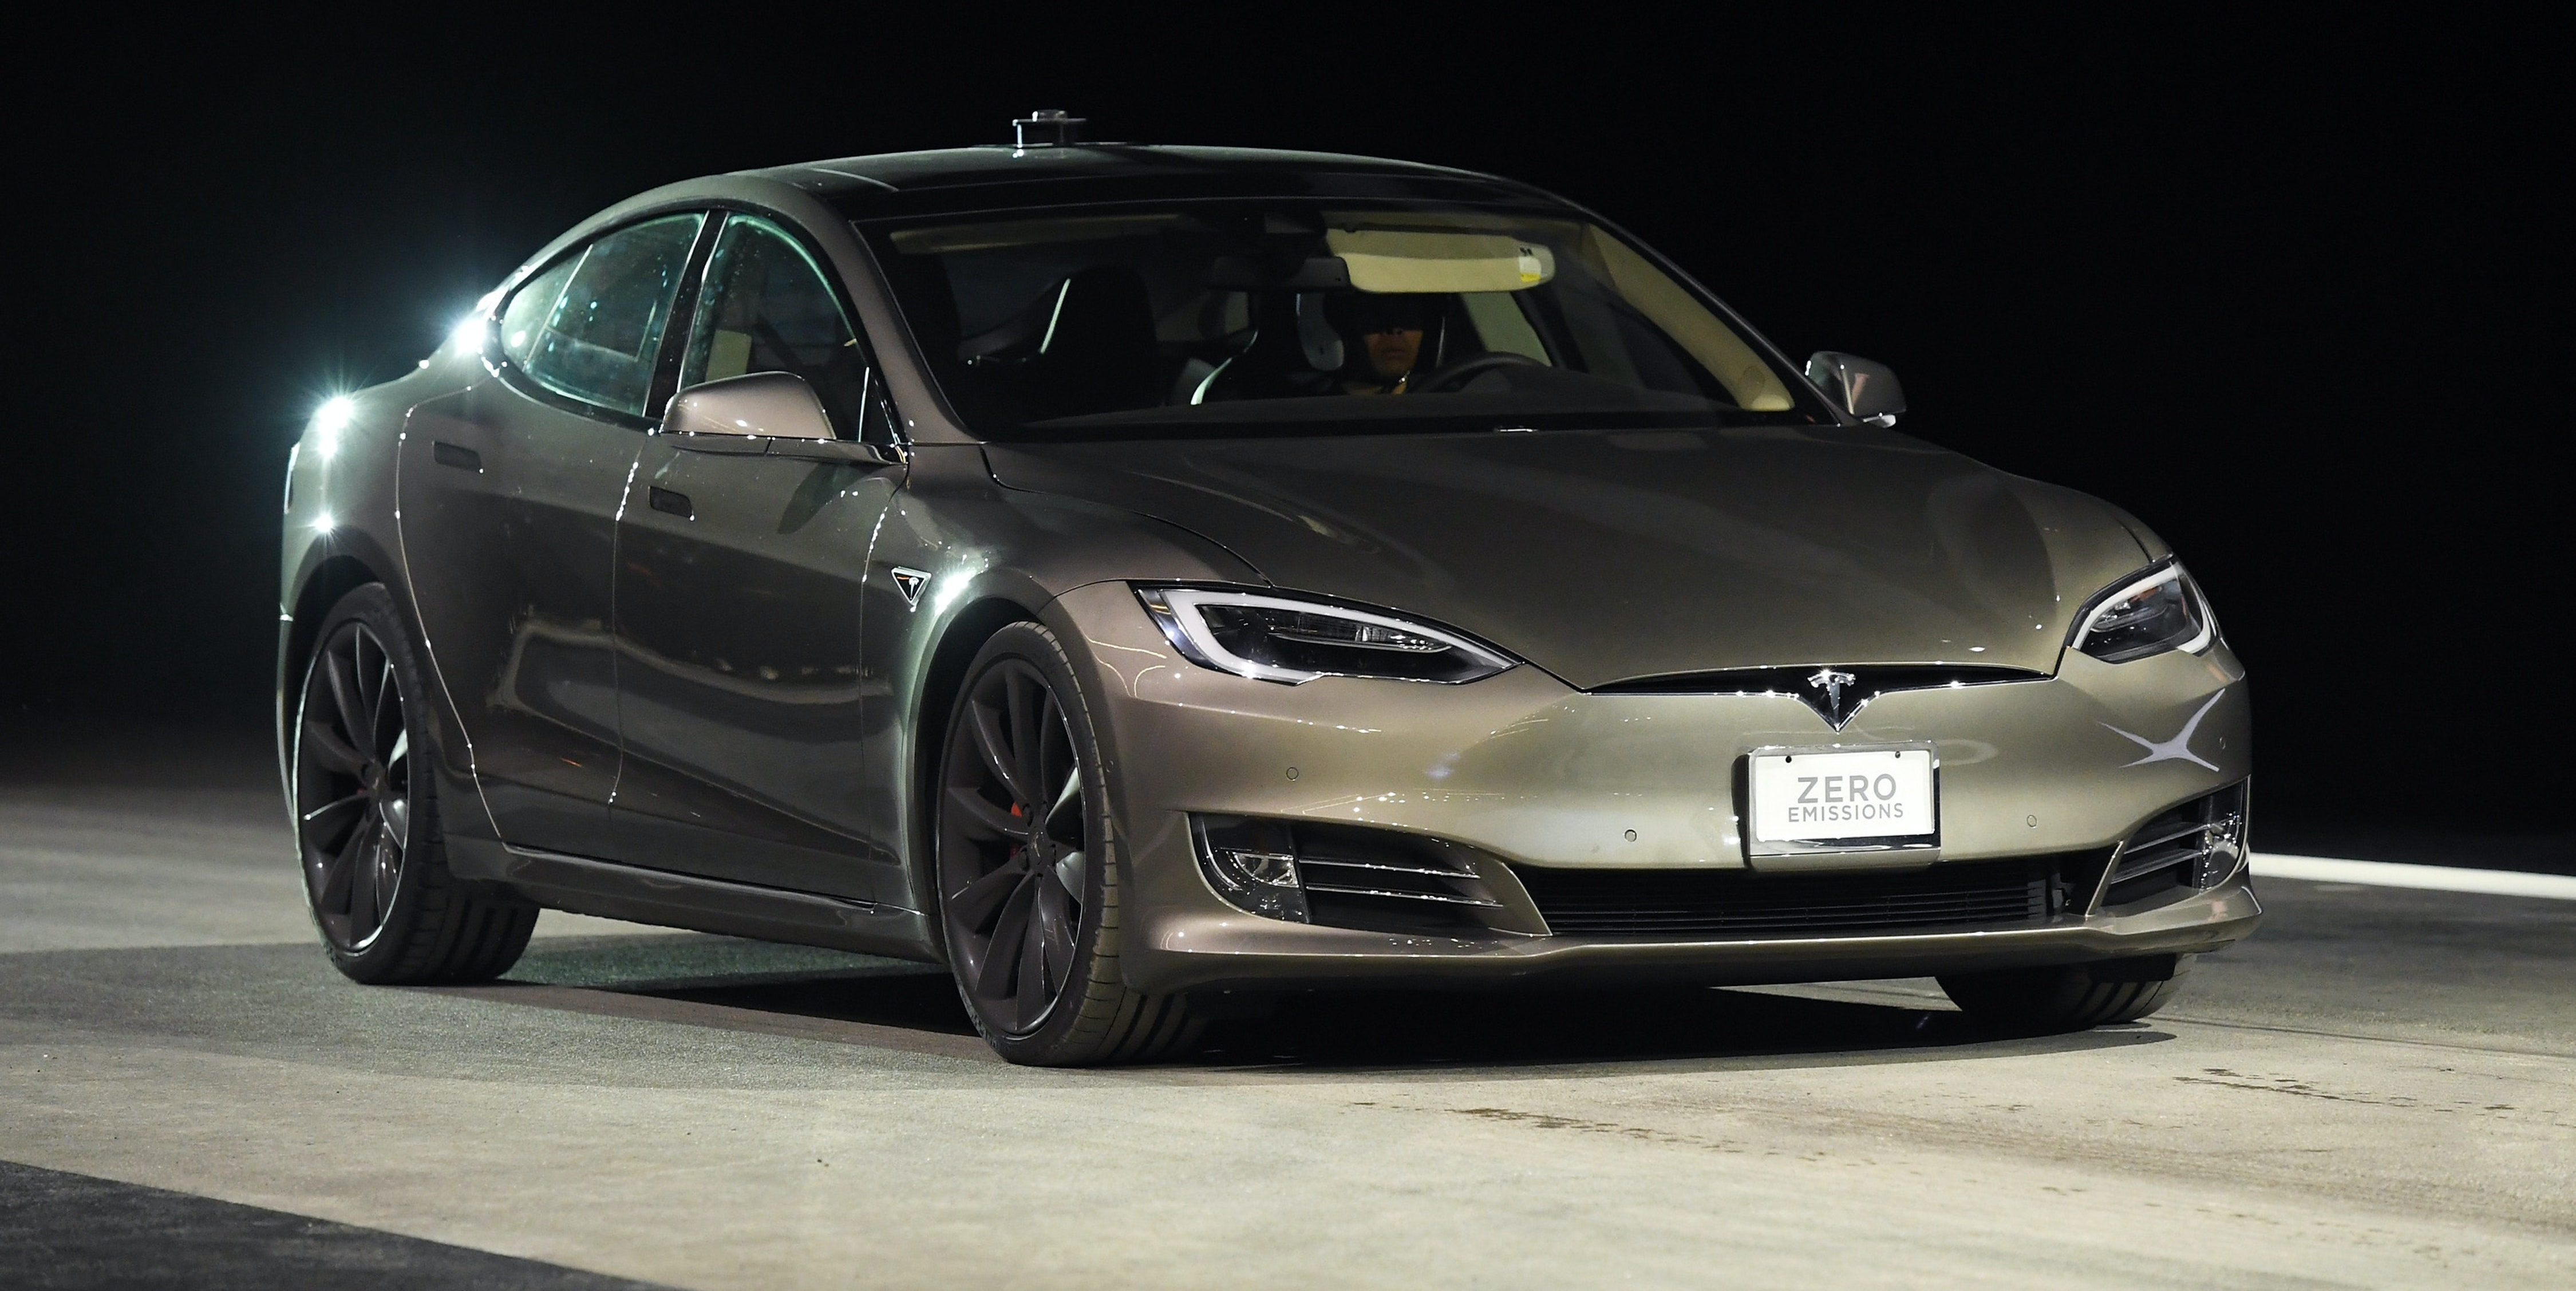 LAS VEGAS, NV - JANUARY 03:  A Tesla Model S P100D in Ludicrous Mode is shown during a speed test against Faraday Future's FF 91 prototype electric crossover vehicle (not shown) during the FF 91's unveiling at a press event for CES 2017 at The Pavilions at Las Vegas Market on January 3, 2017 in Las Vegas, Nevada. The 1,050-horsepower FF 91 features autonomous driving with 3D lidar and can go from 0 to 60 mph in 2.39 seconds. CES, the world's largest annual consumer technology trade show, runs from January 5-8 and is expected to feature 3,800 exhibitors showing off their latest products and services to more than 165,000 attendees.  (Photo by Ethan Miller/Getty Images)